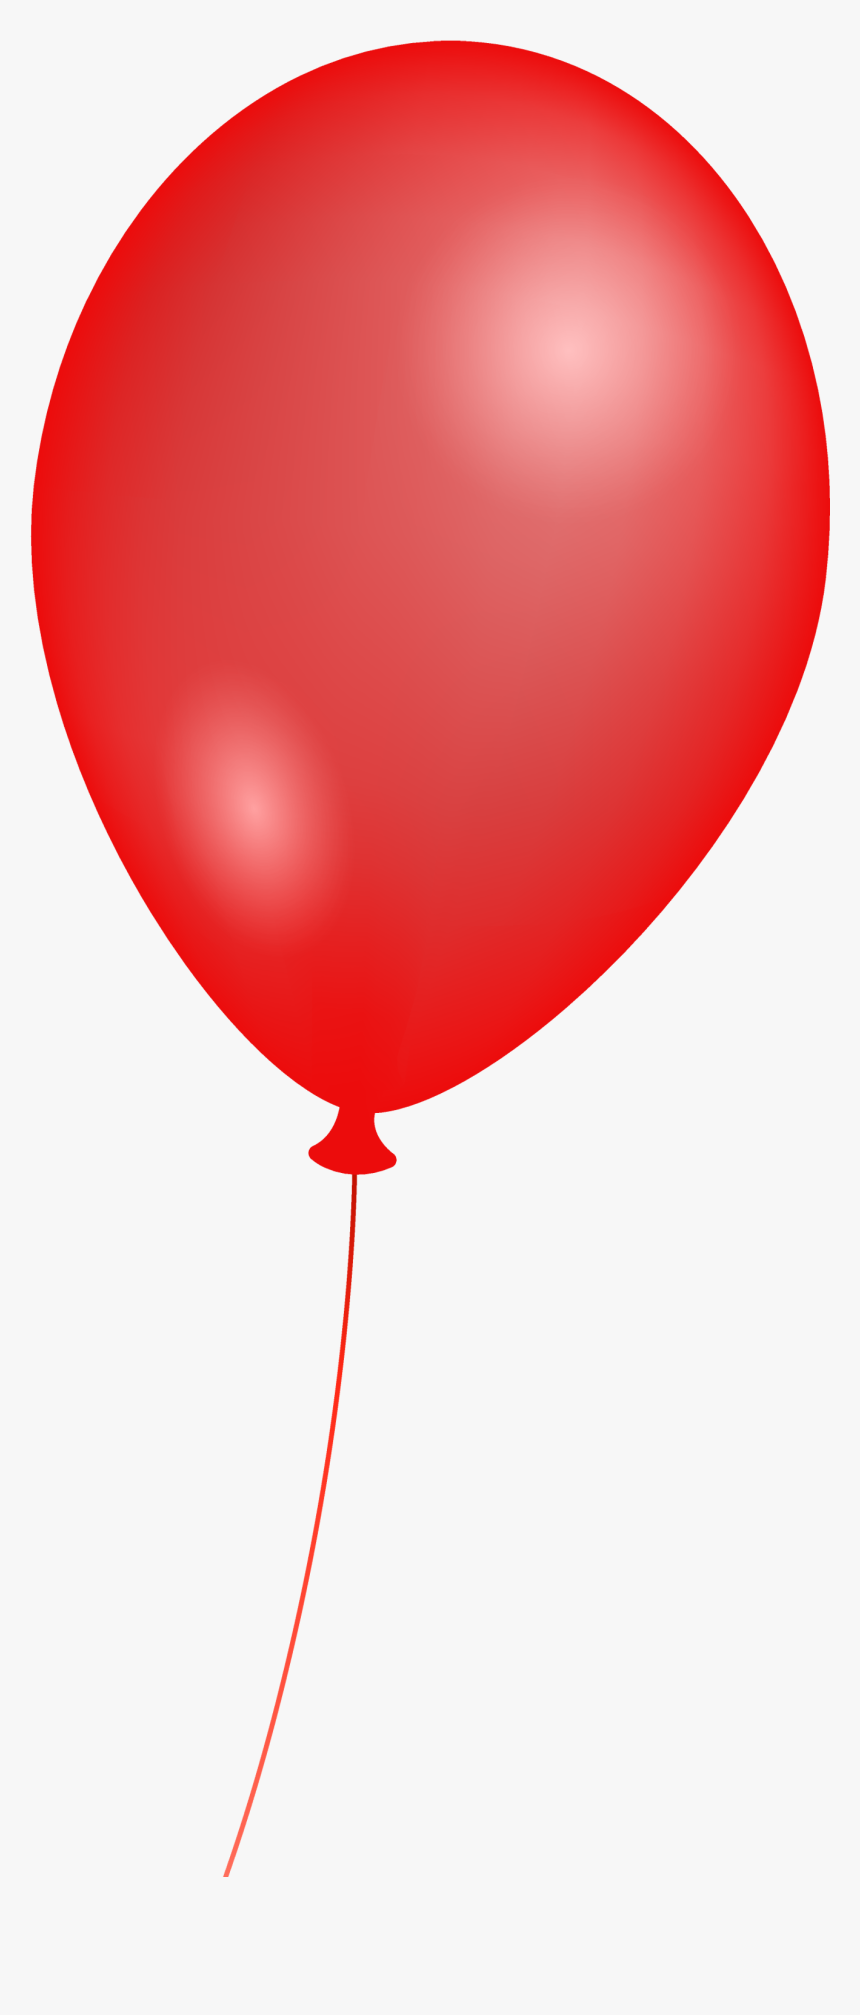 Balloon Image Hd Png, Transparent Png, Free Download